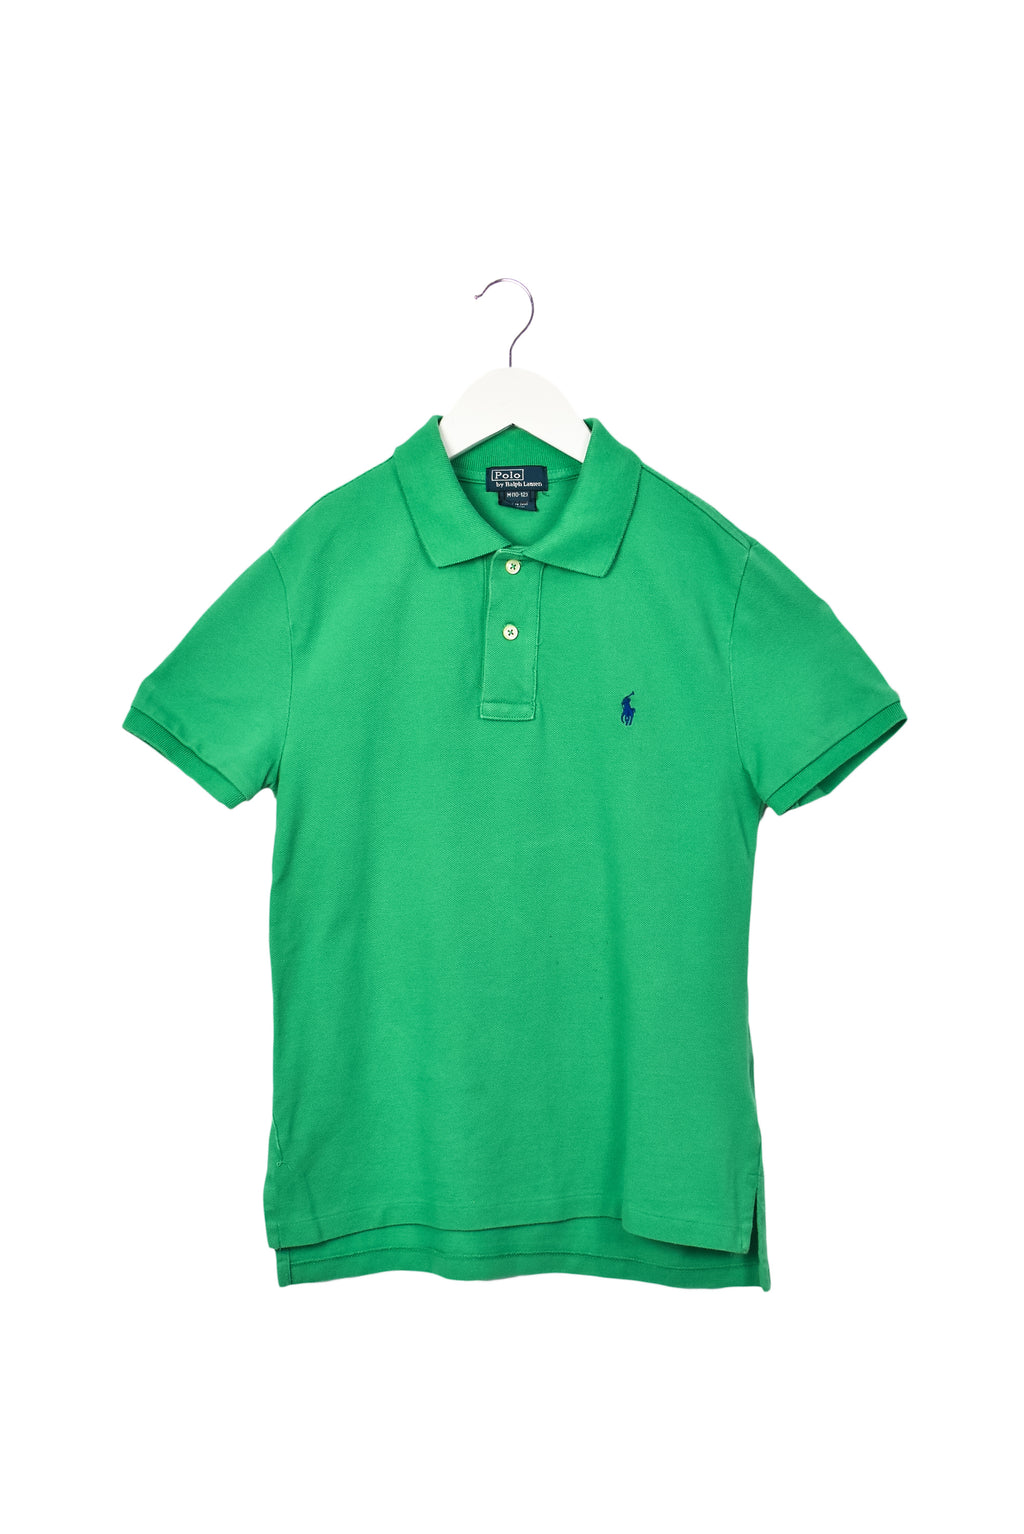 10037592 Polo Ralph Lauren Kids~Polo 10-12 at Retykle